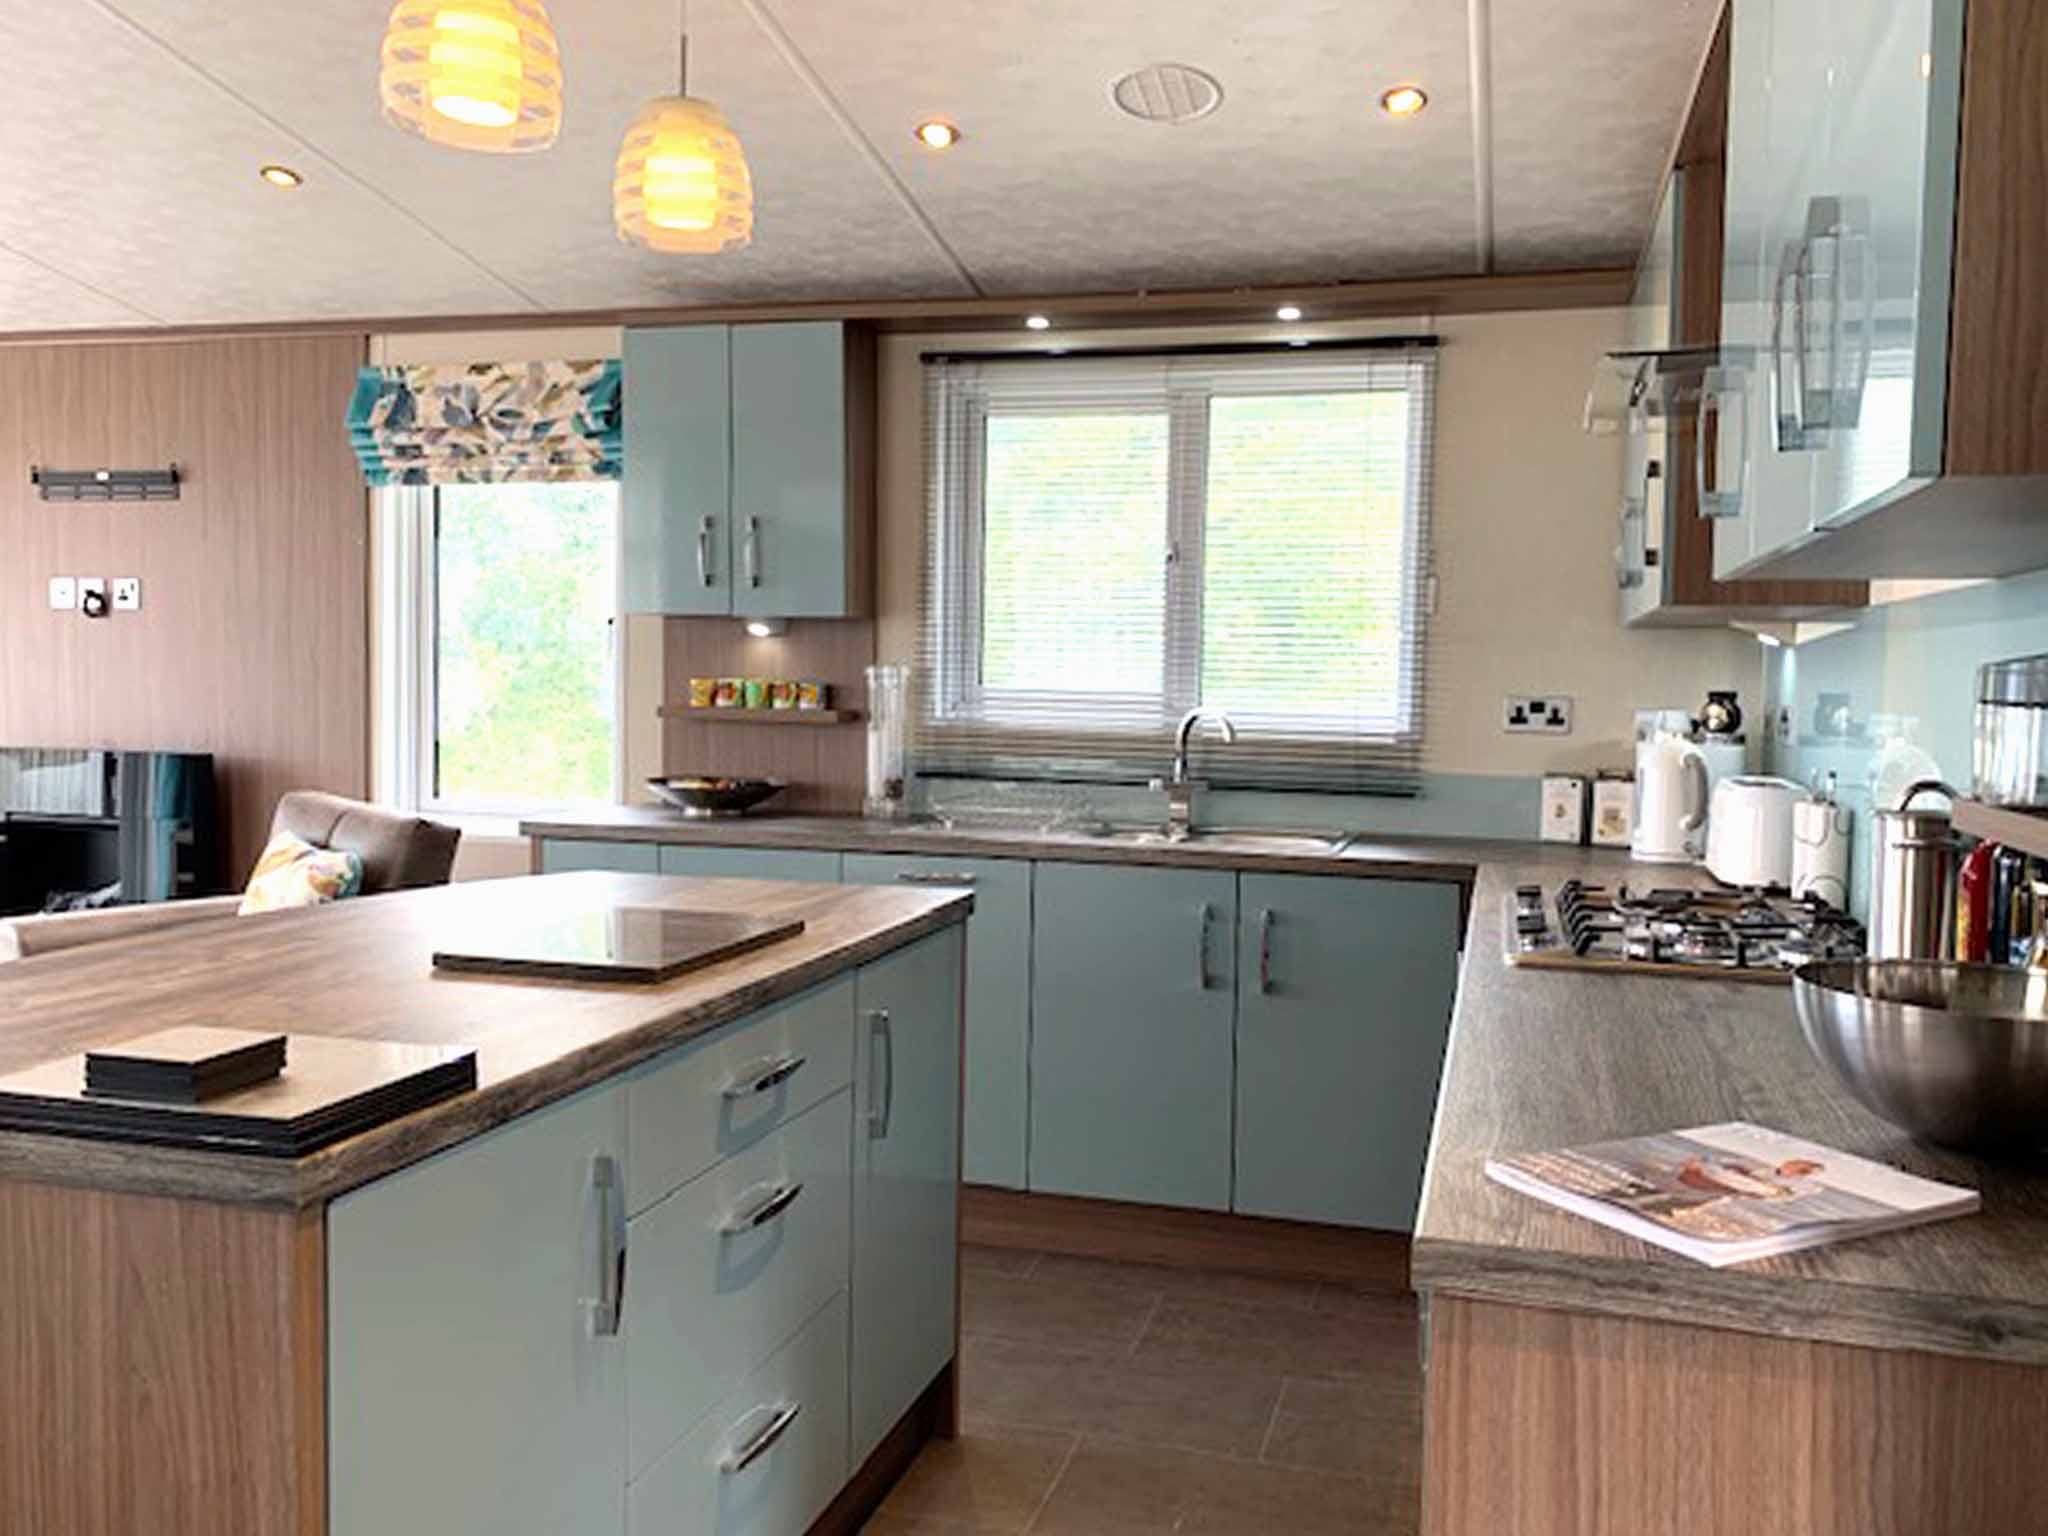 Pemberton Arrondale Lodge Kitchen Gwalia Falls Retreat Tresaith Beach